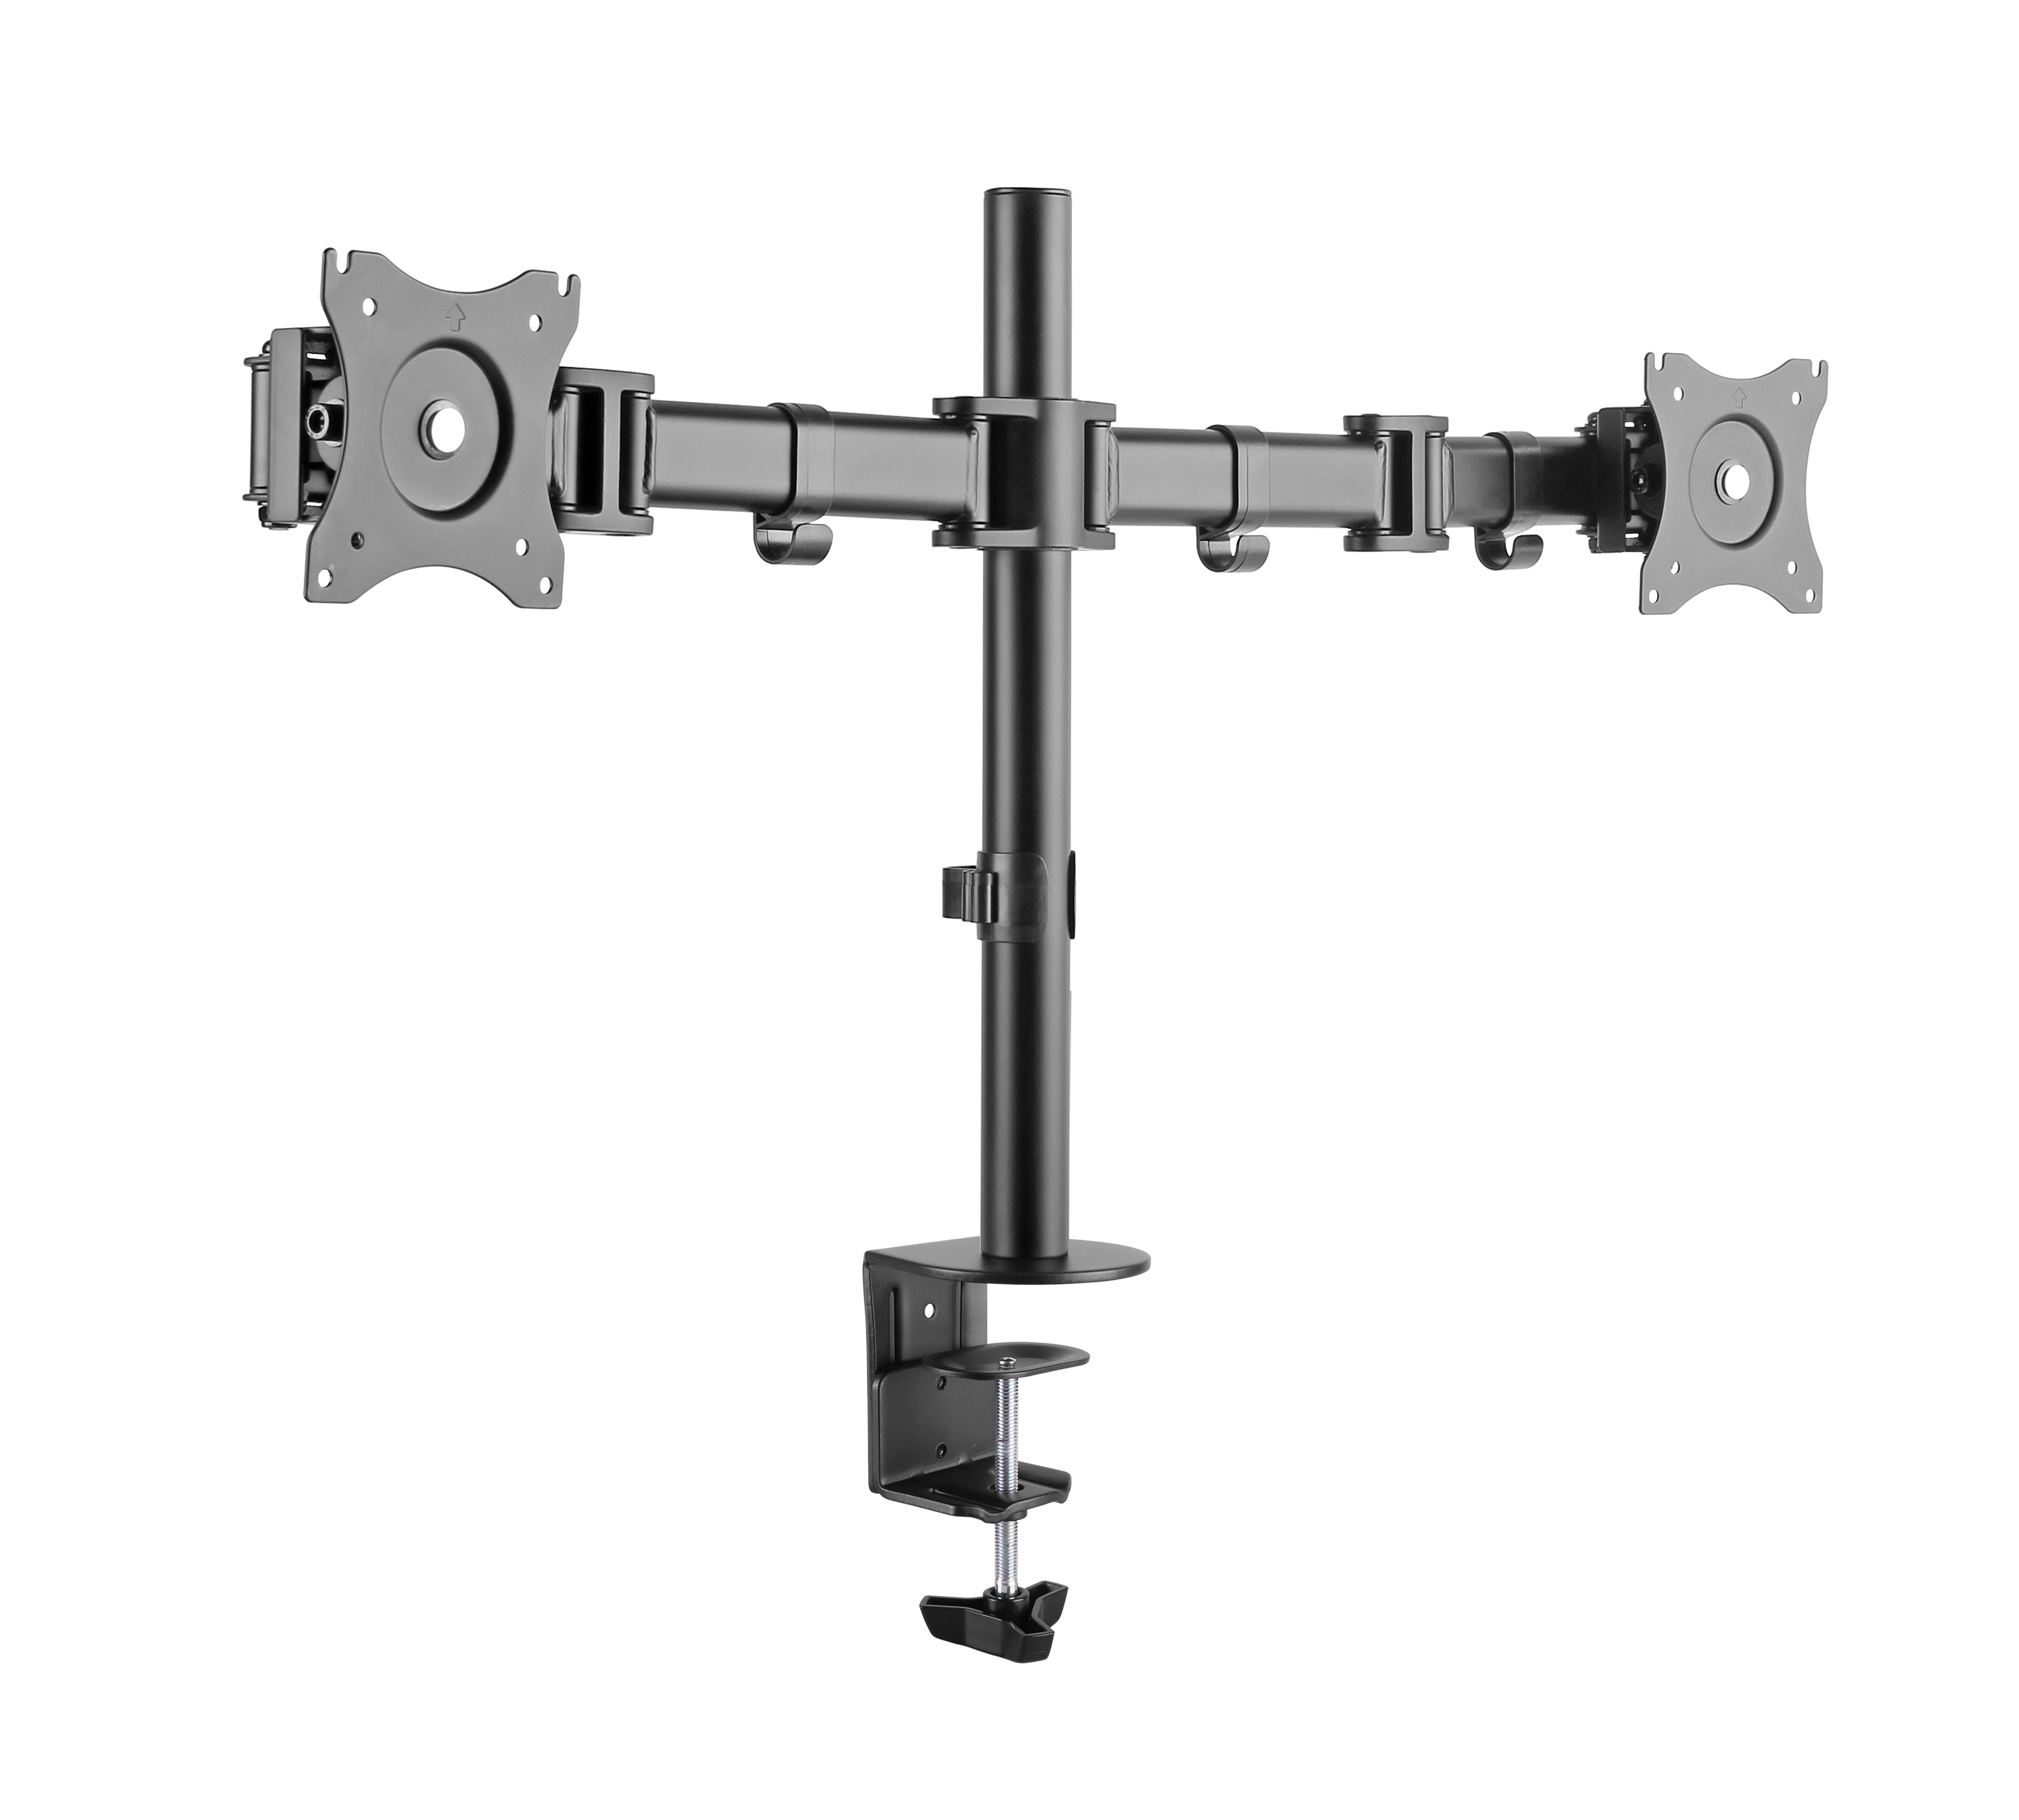 Monitor bracket for two monitor flexible type